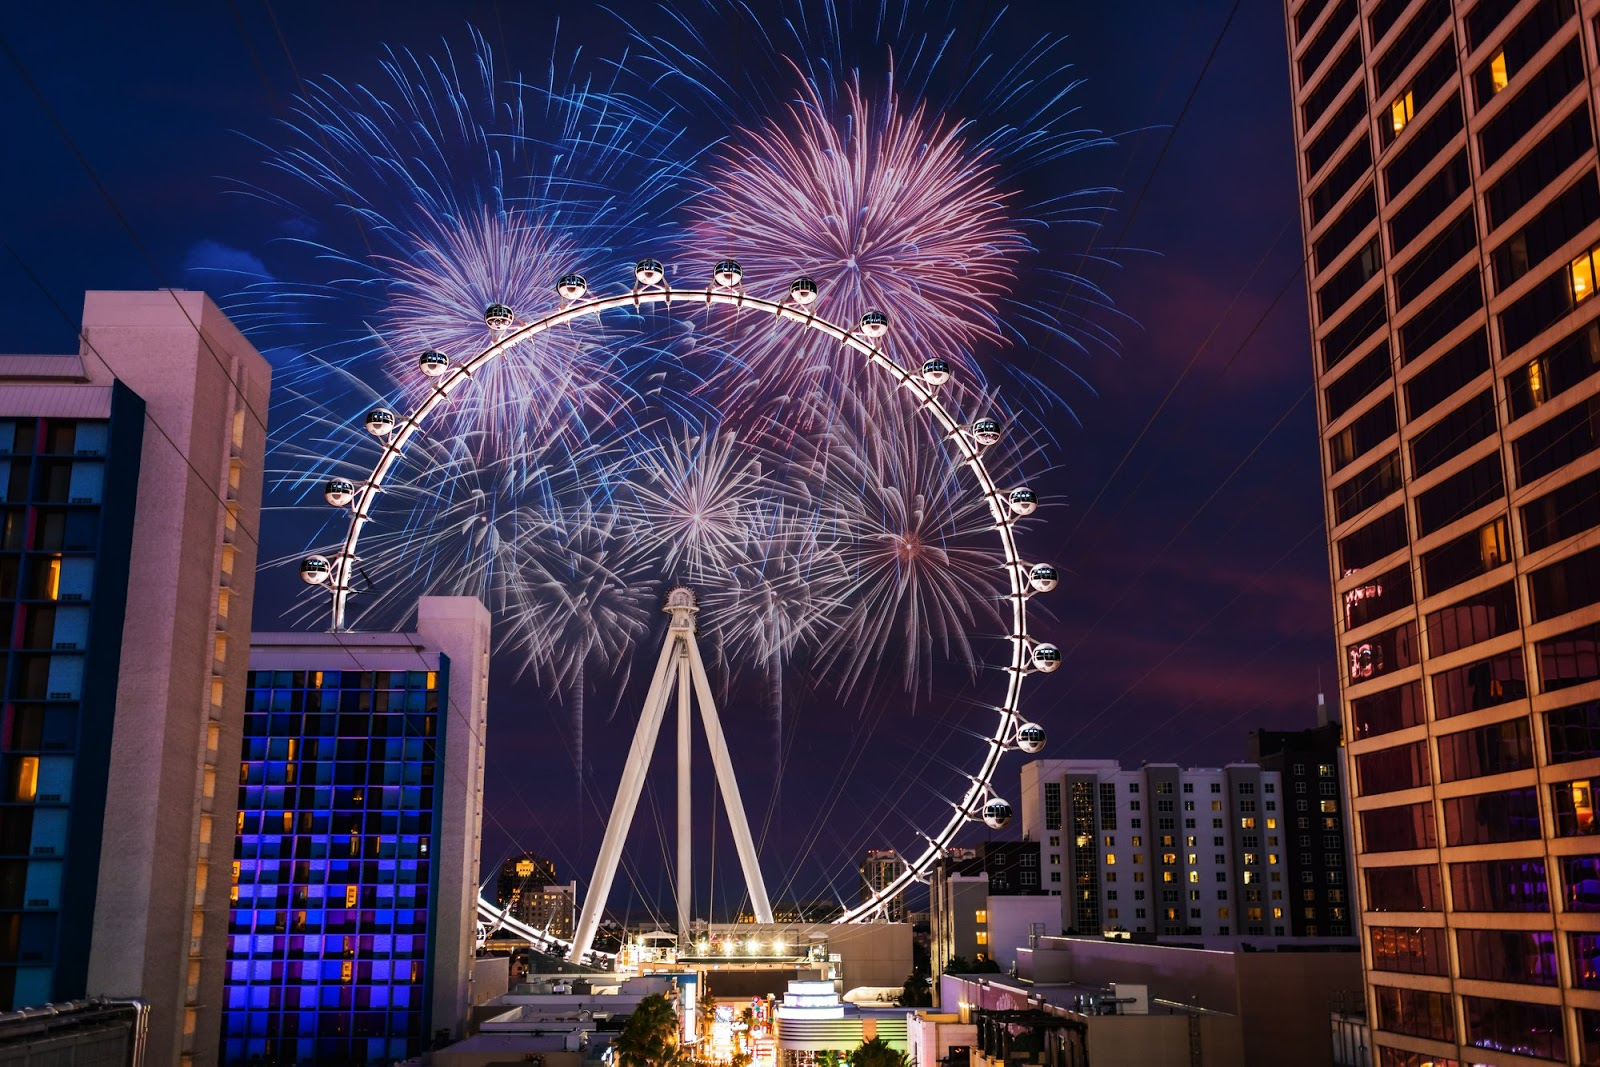 A photo of the largest observation wheel in the world, The High Roller, sits between several hotels at The Linq on The Strip. The High Roller glows in the night as red, white and blue fireworks go off in the background.